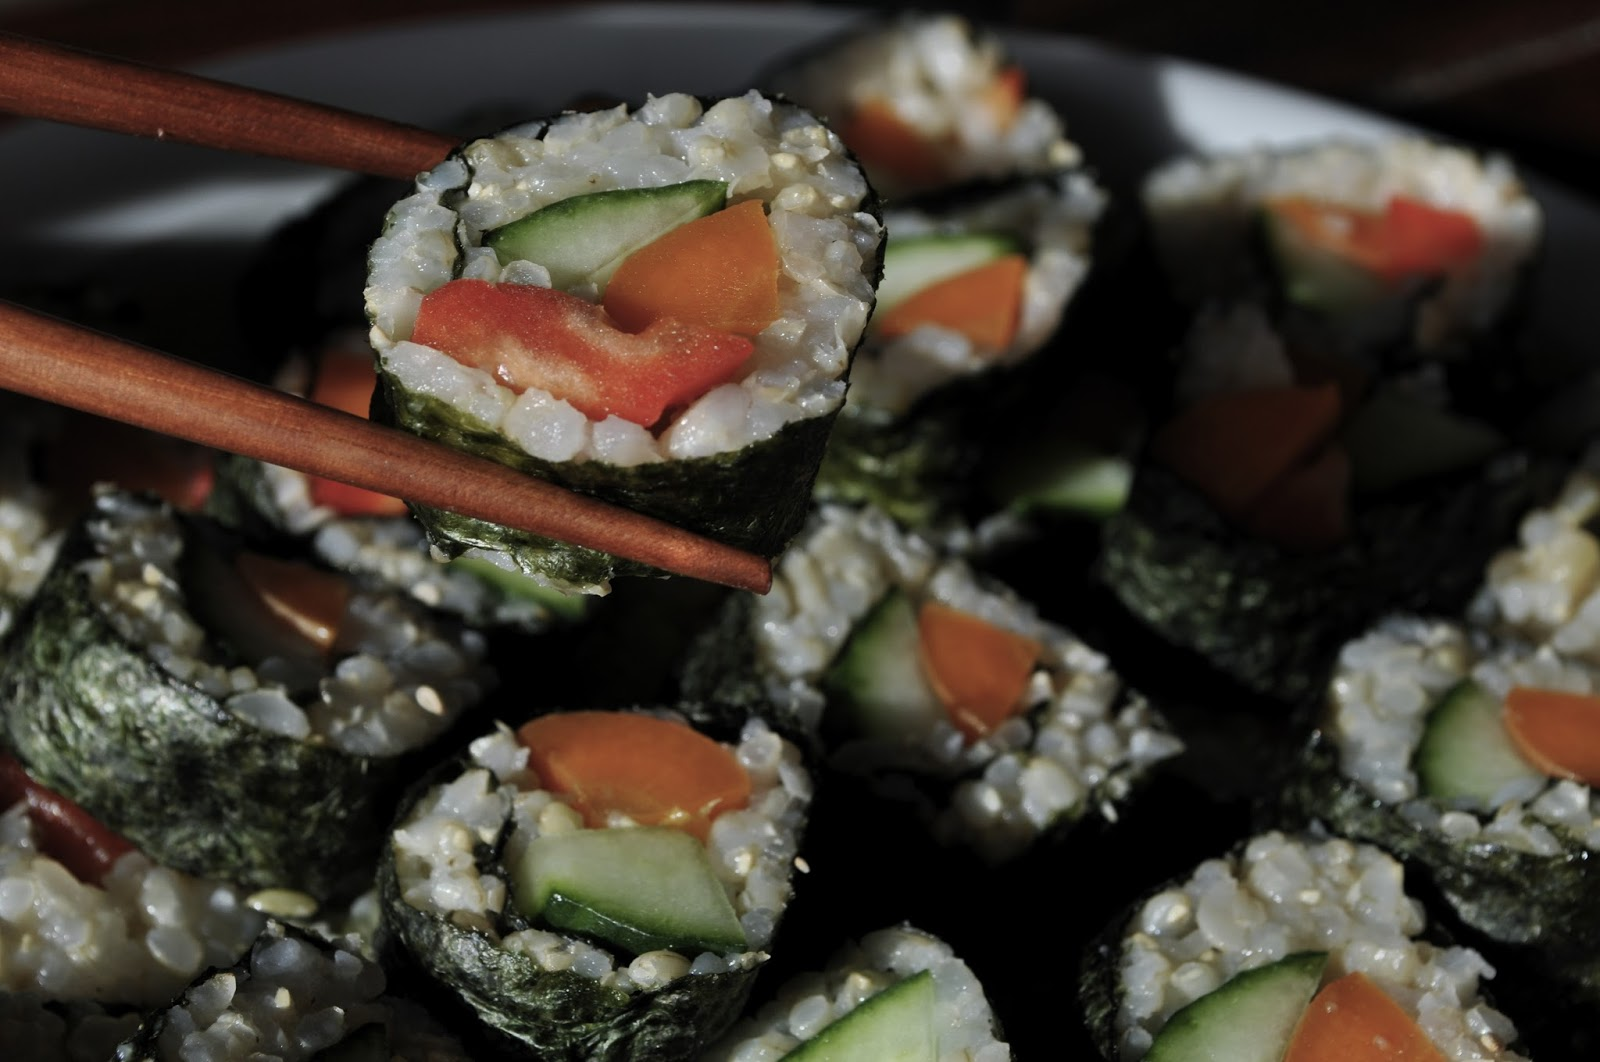 http://www.thecapitalf.com/2016/02/brown-rice-sushi.html